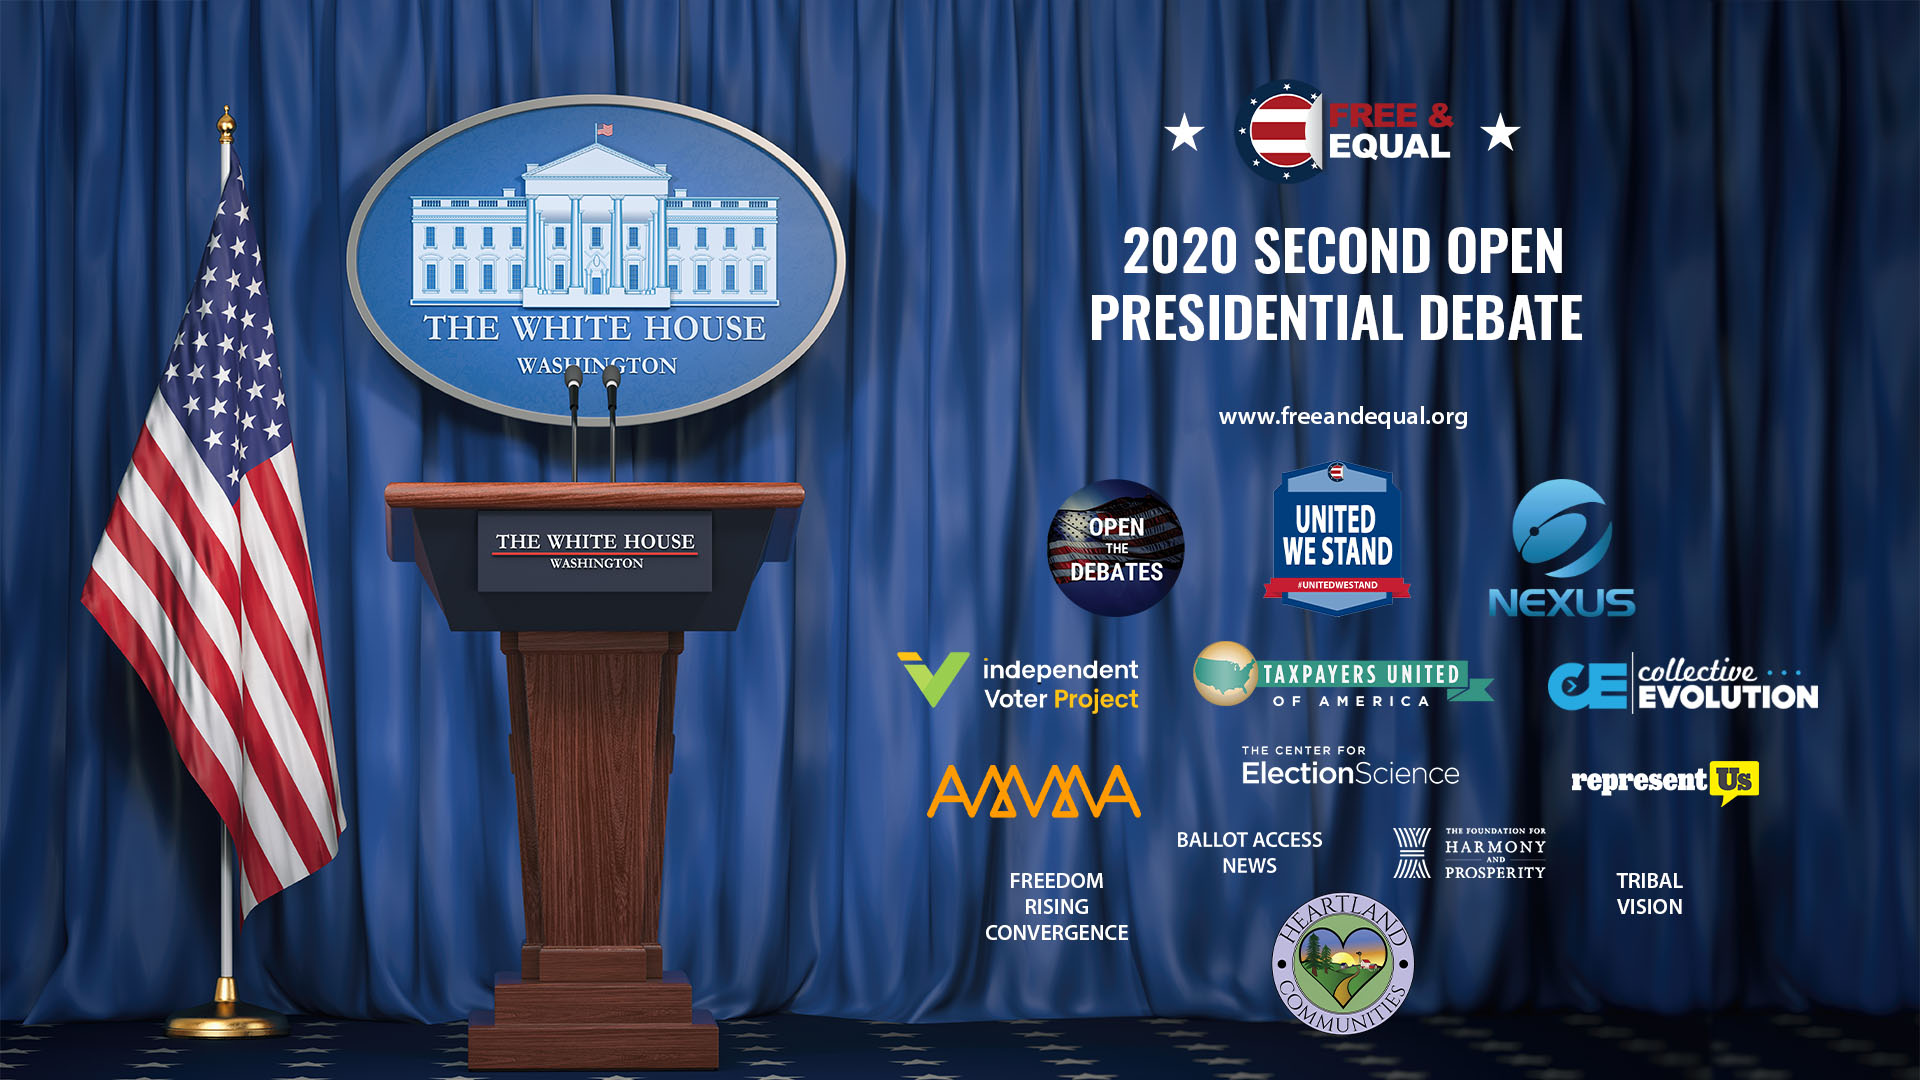 Free and Equal Elections Second Presidential Debate 2020 - List of Sponsors www.freeandequal.org v2